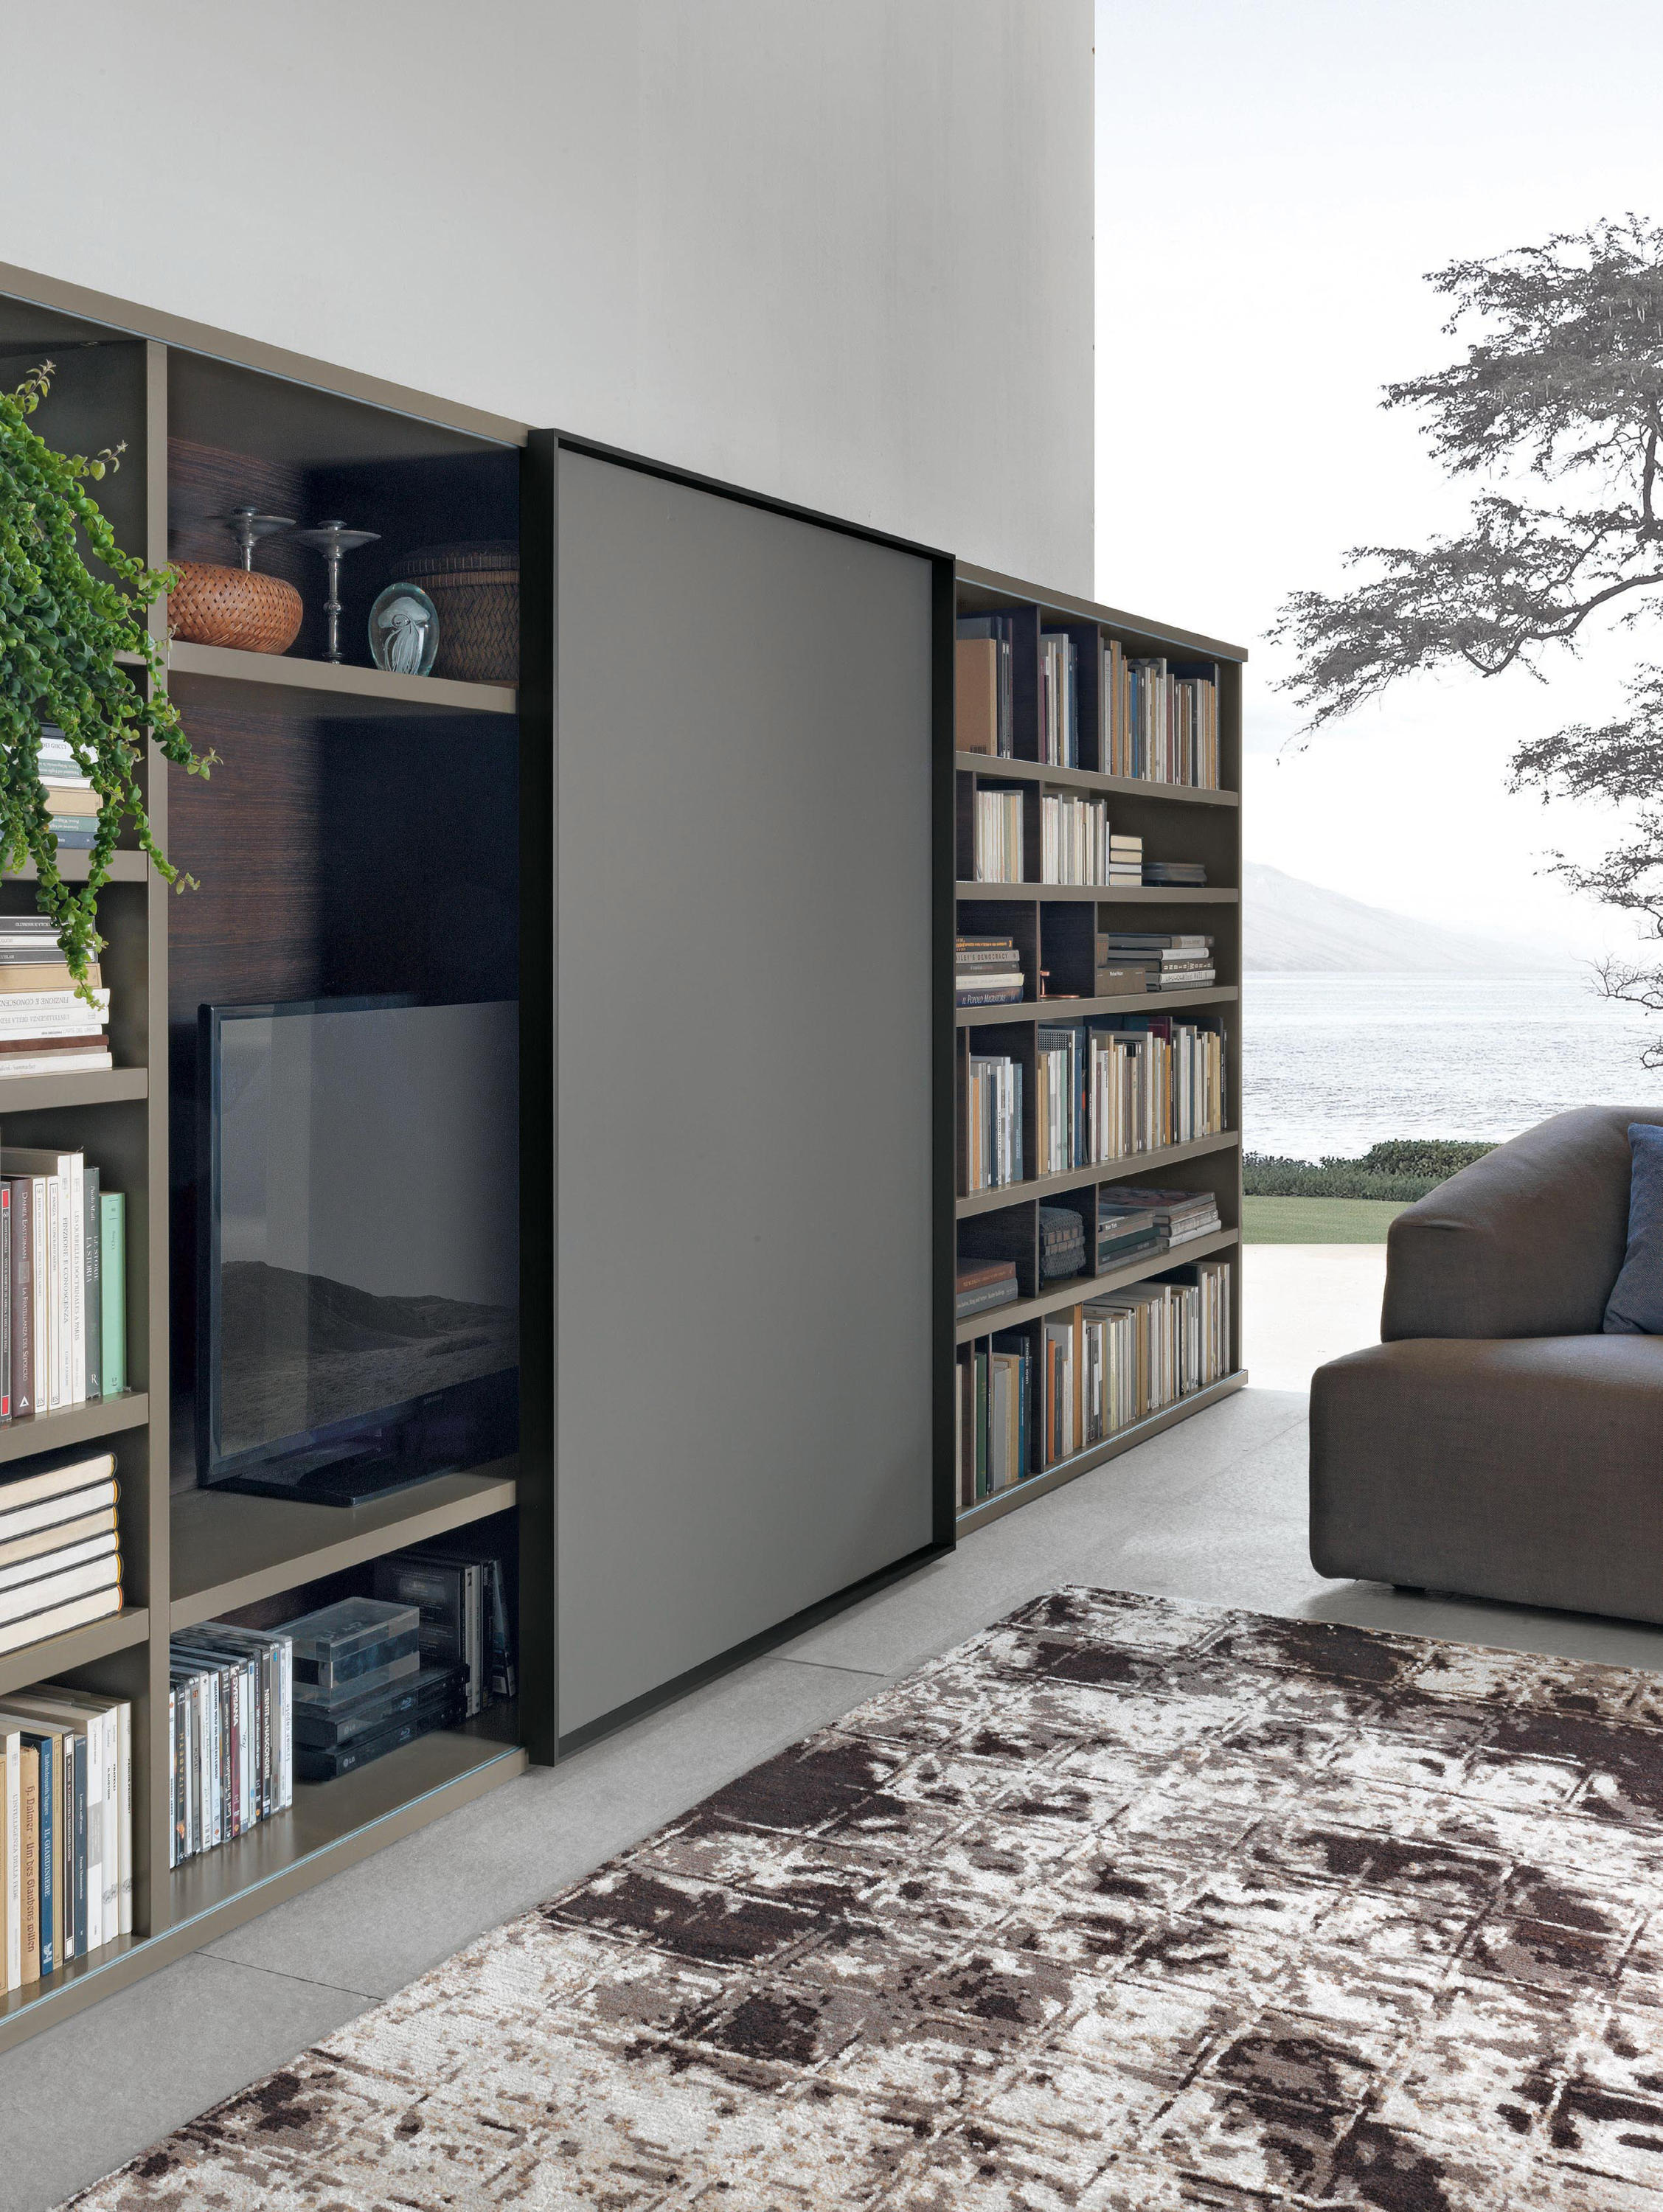 construction boasts with two clean a open metal design sleek our shelf bookcase pin bookcases